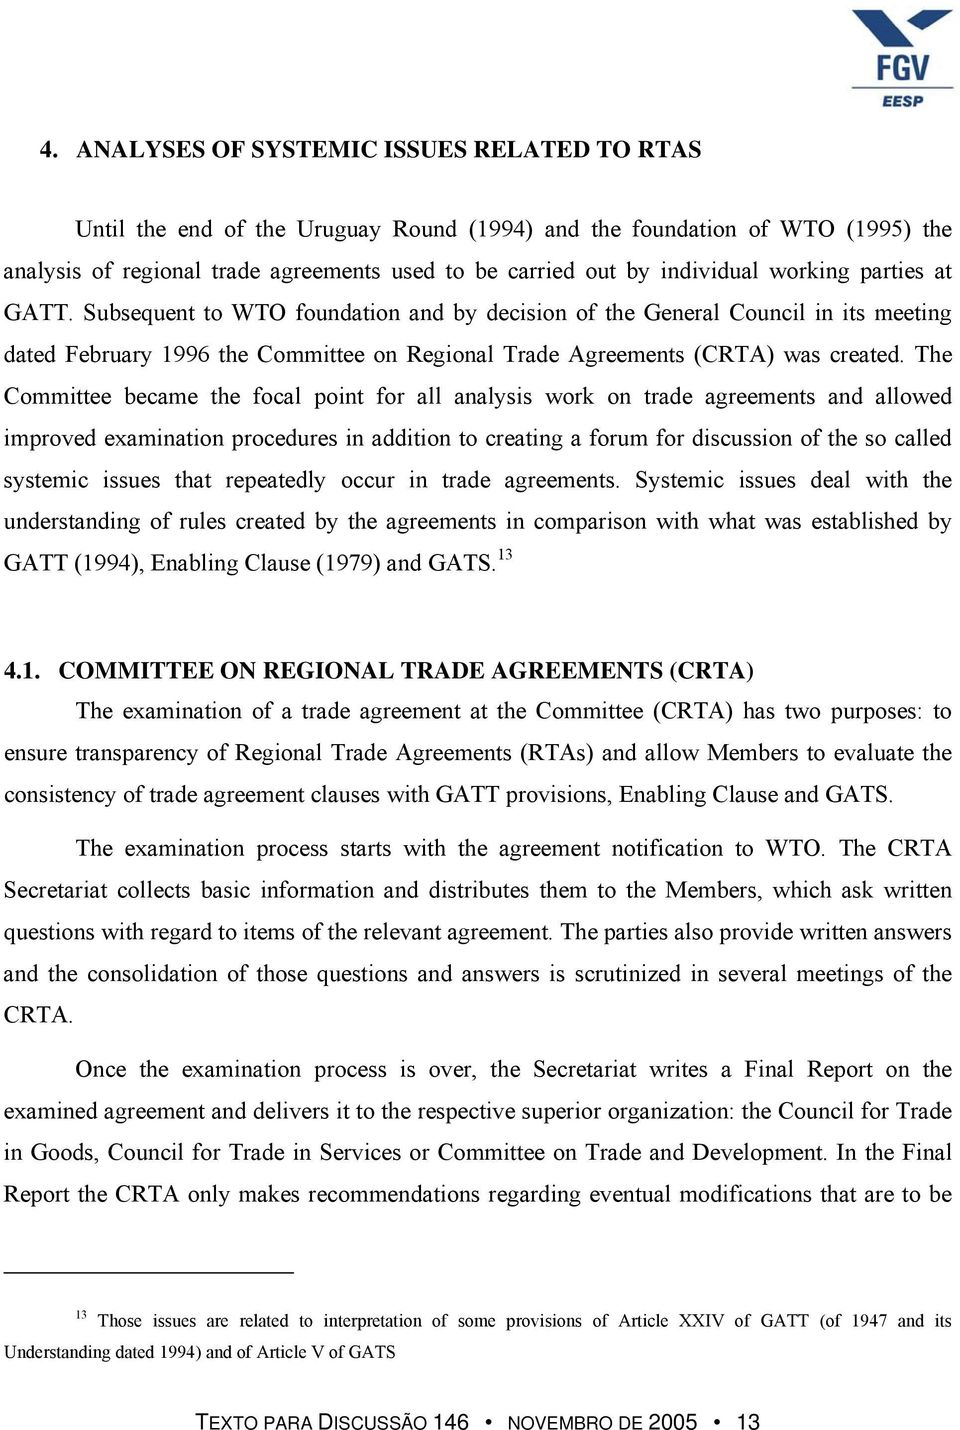 Subsequent to WTO foundation and by decision of the General Council in its meeting dated February 1996 the Committee on Regional Trade Agreements (CRTA) was created.